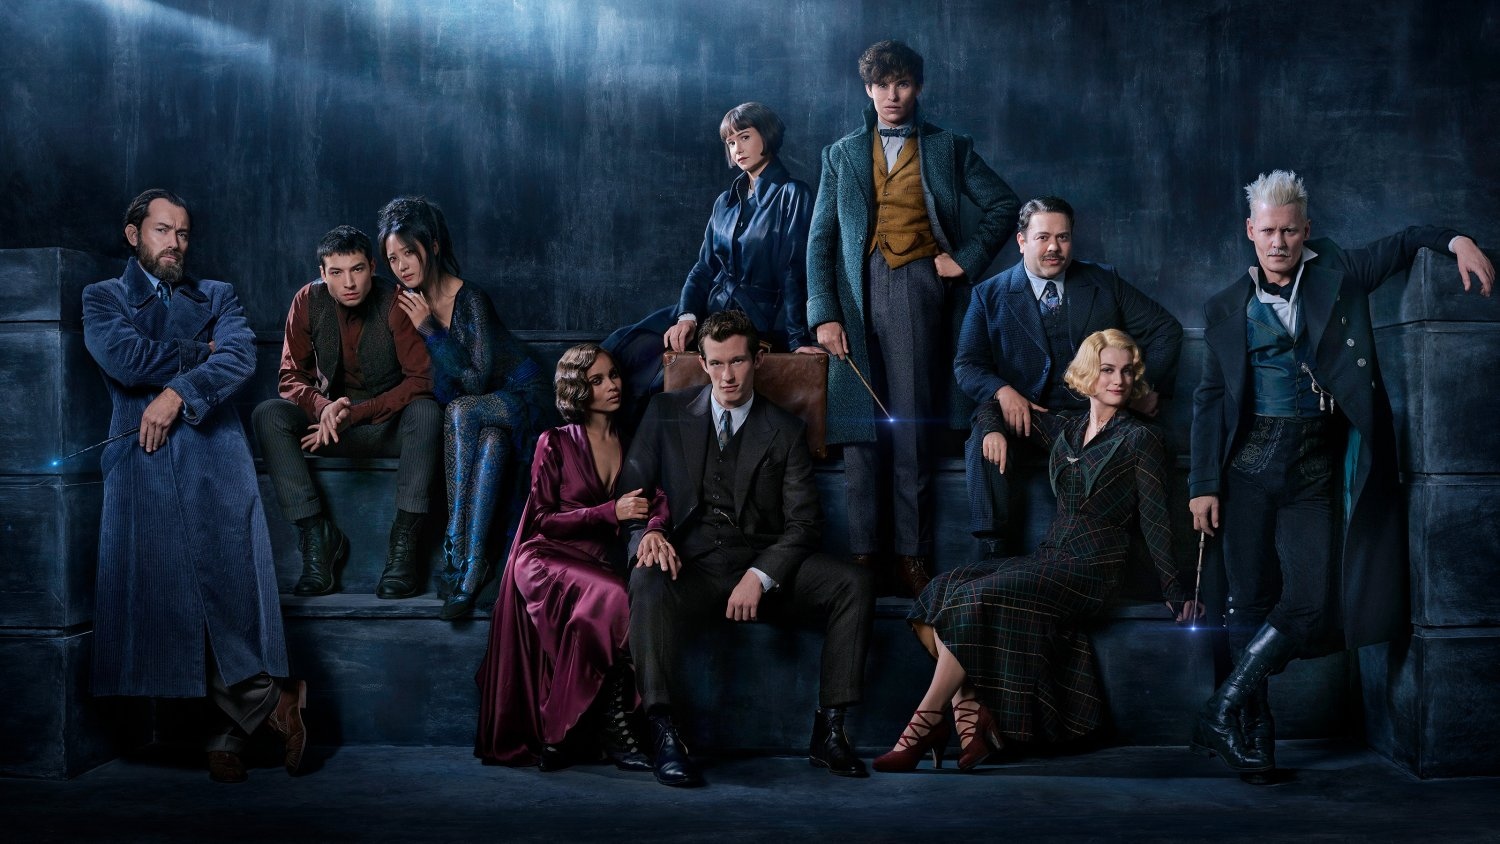 Fantastic Beasts – First Look Image